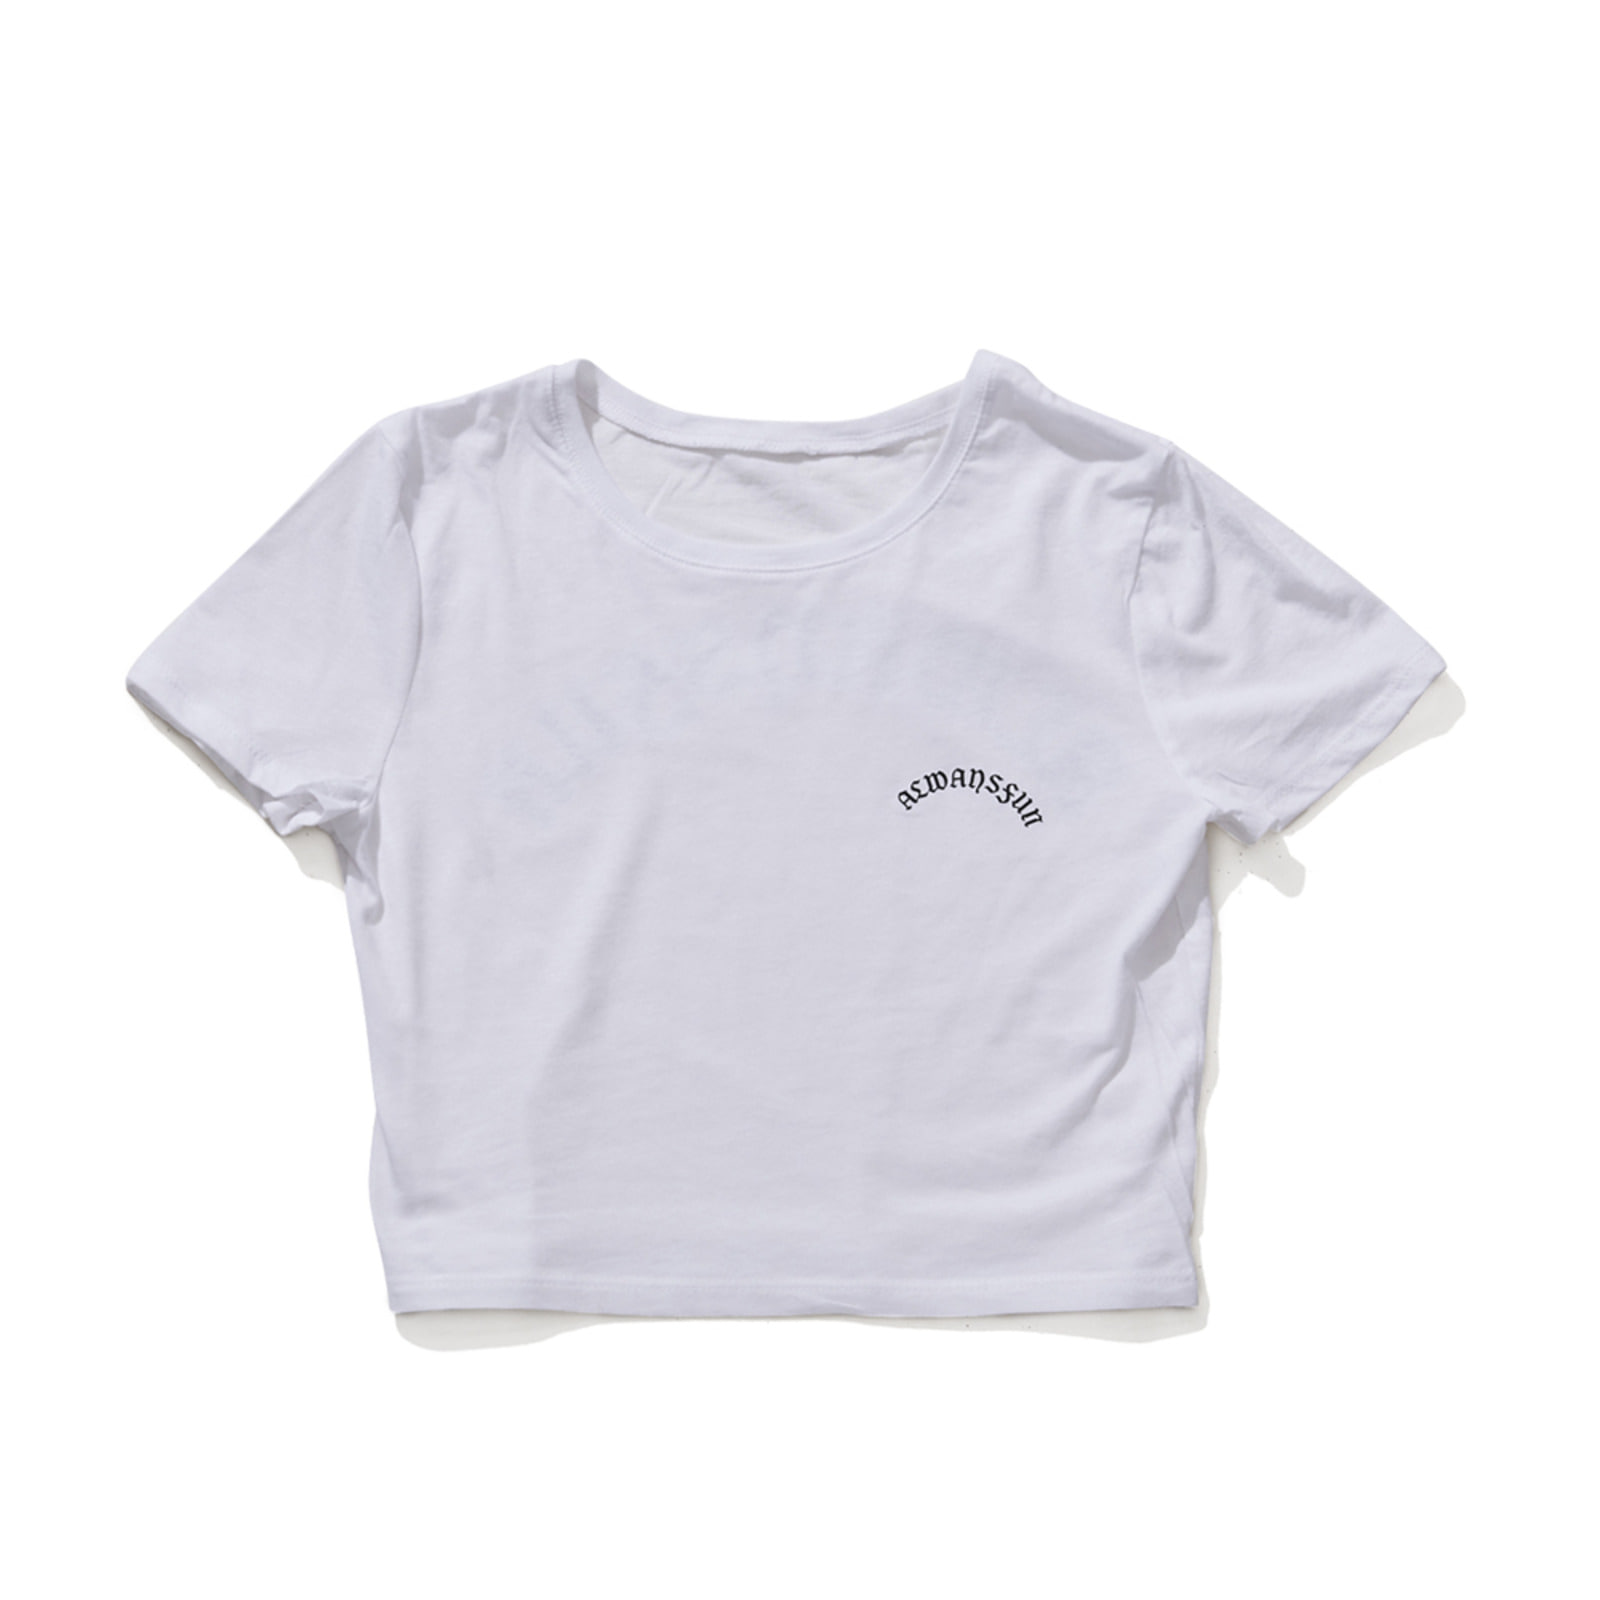 BSRABBIT ALWAYSFUN CROP T-SHIRT WHITE